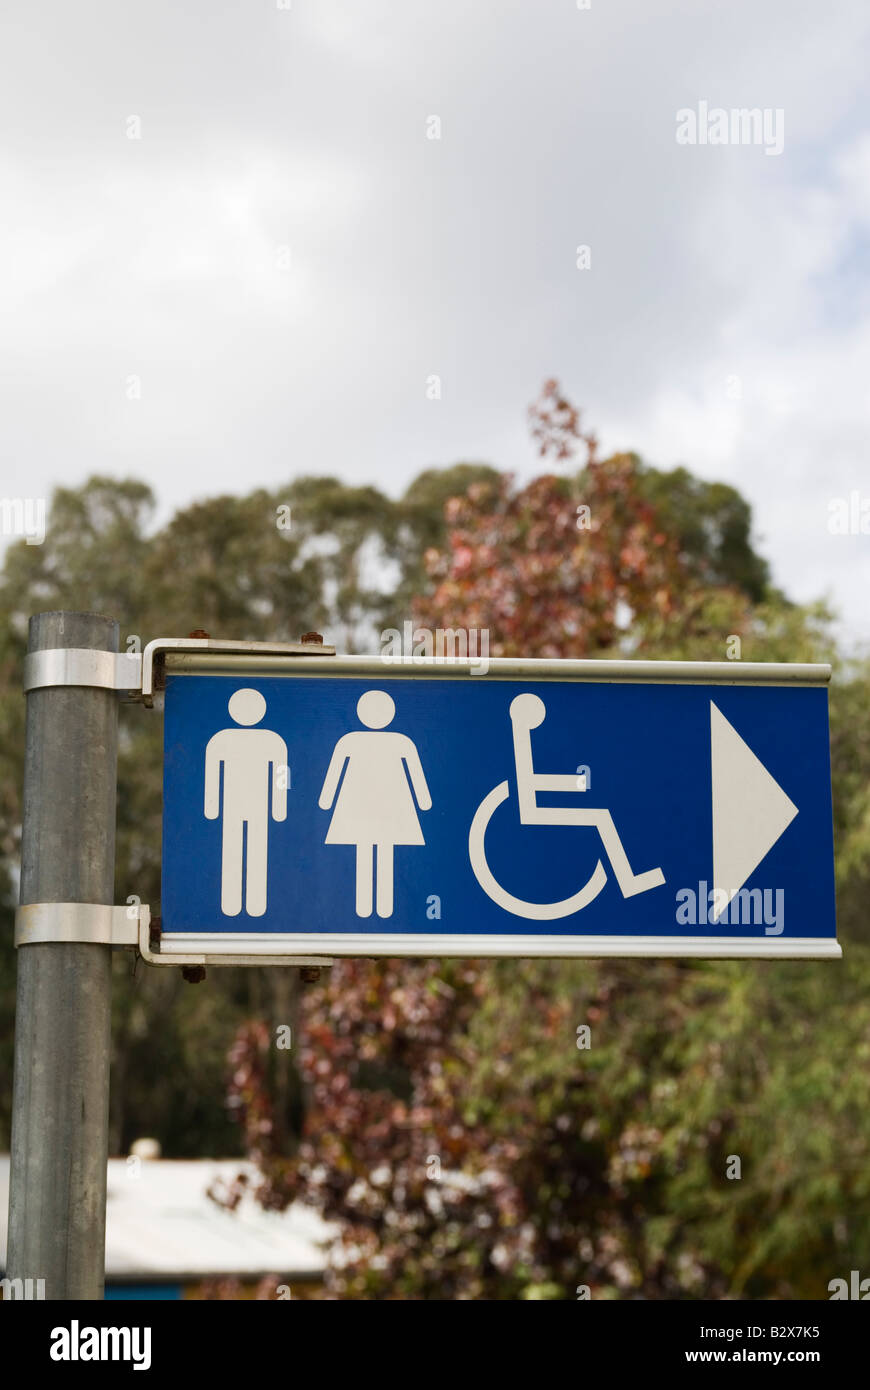 Sign directing people towards the location of public toilets with images of men, women and disabled people - Stock Image